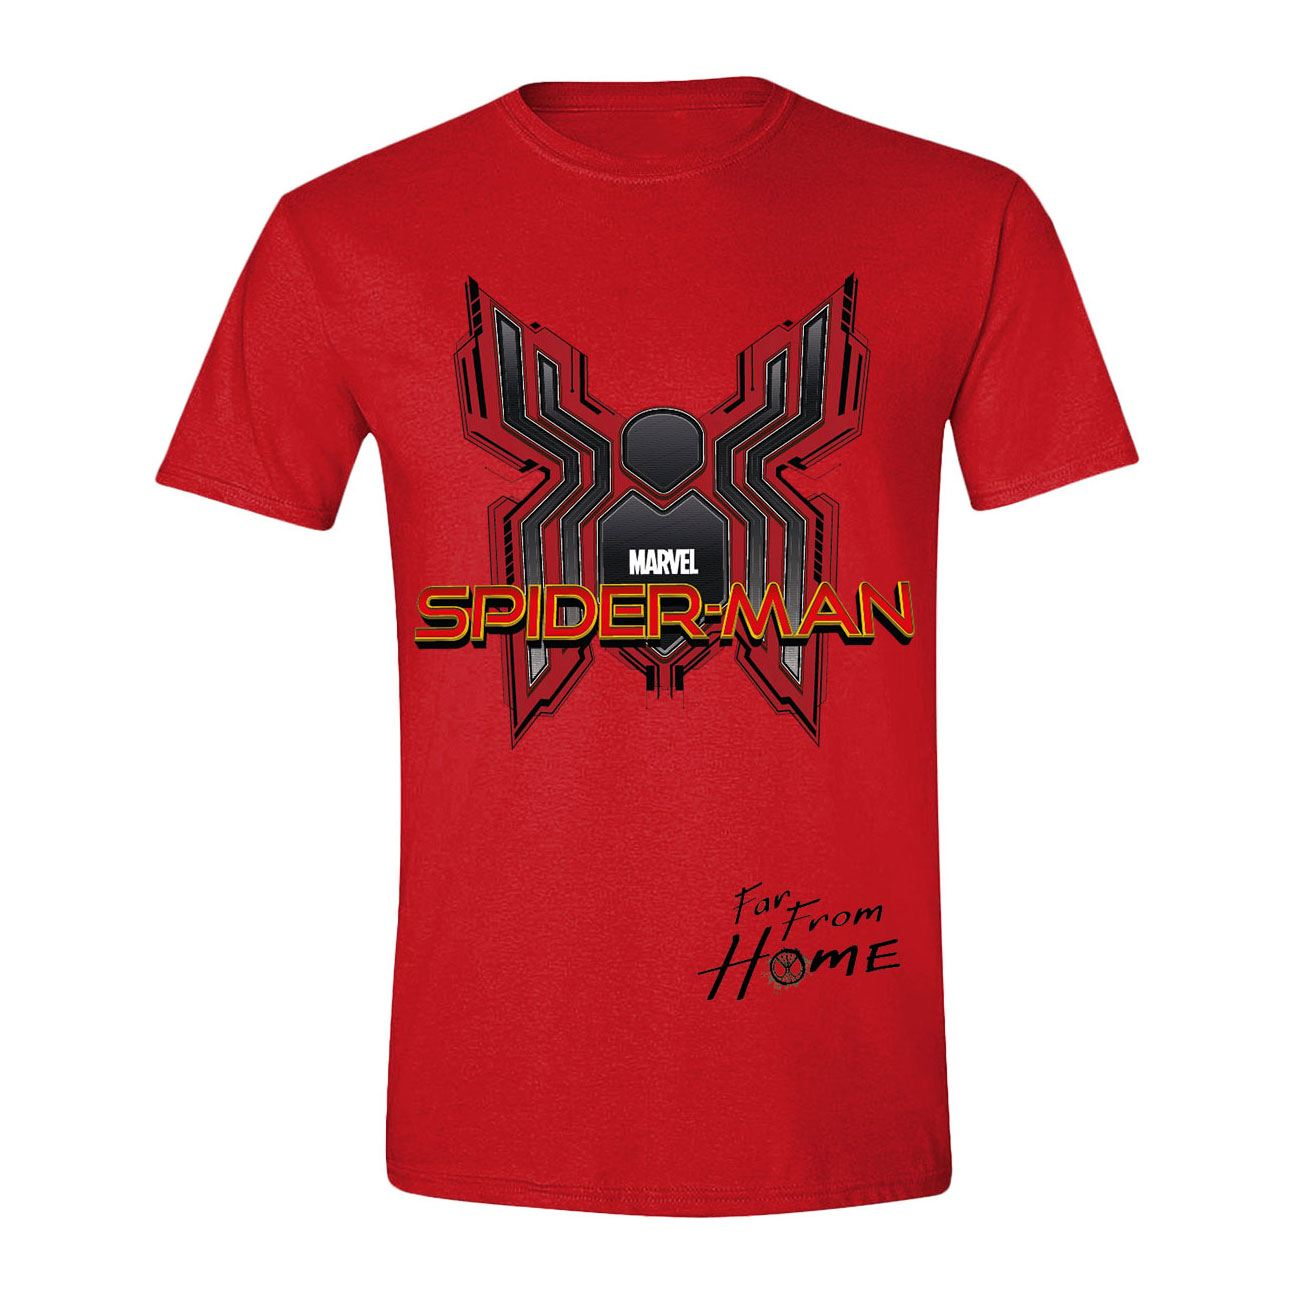 Spider-Man: Far From Home T-Shirt Digital Emblem Size S